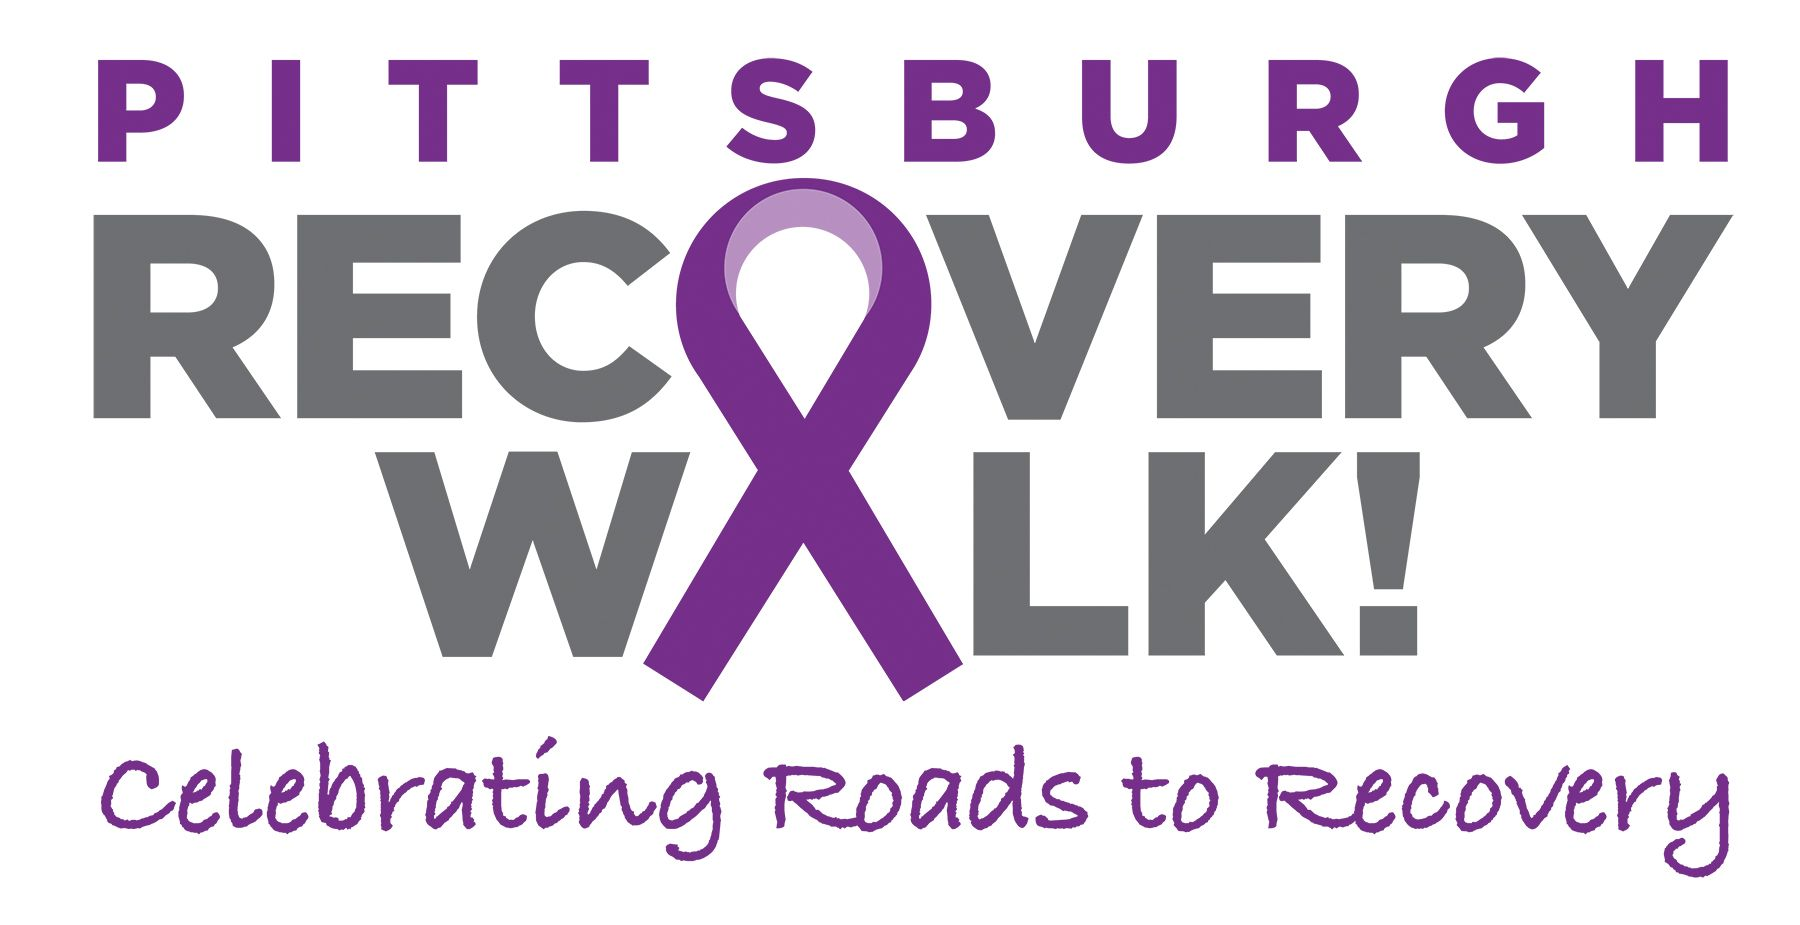 the 2016 pittsburgh recovery walk recovery